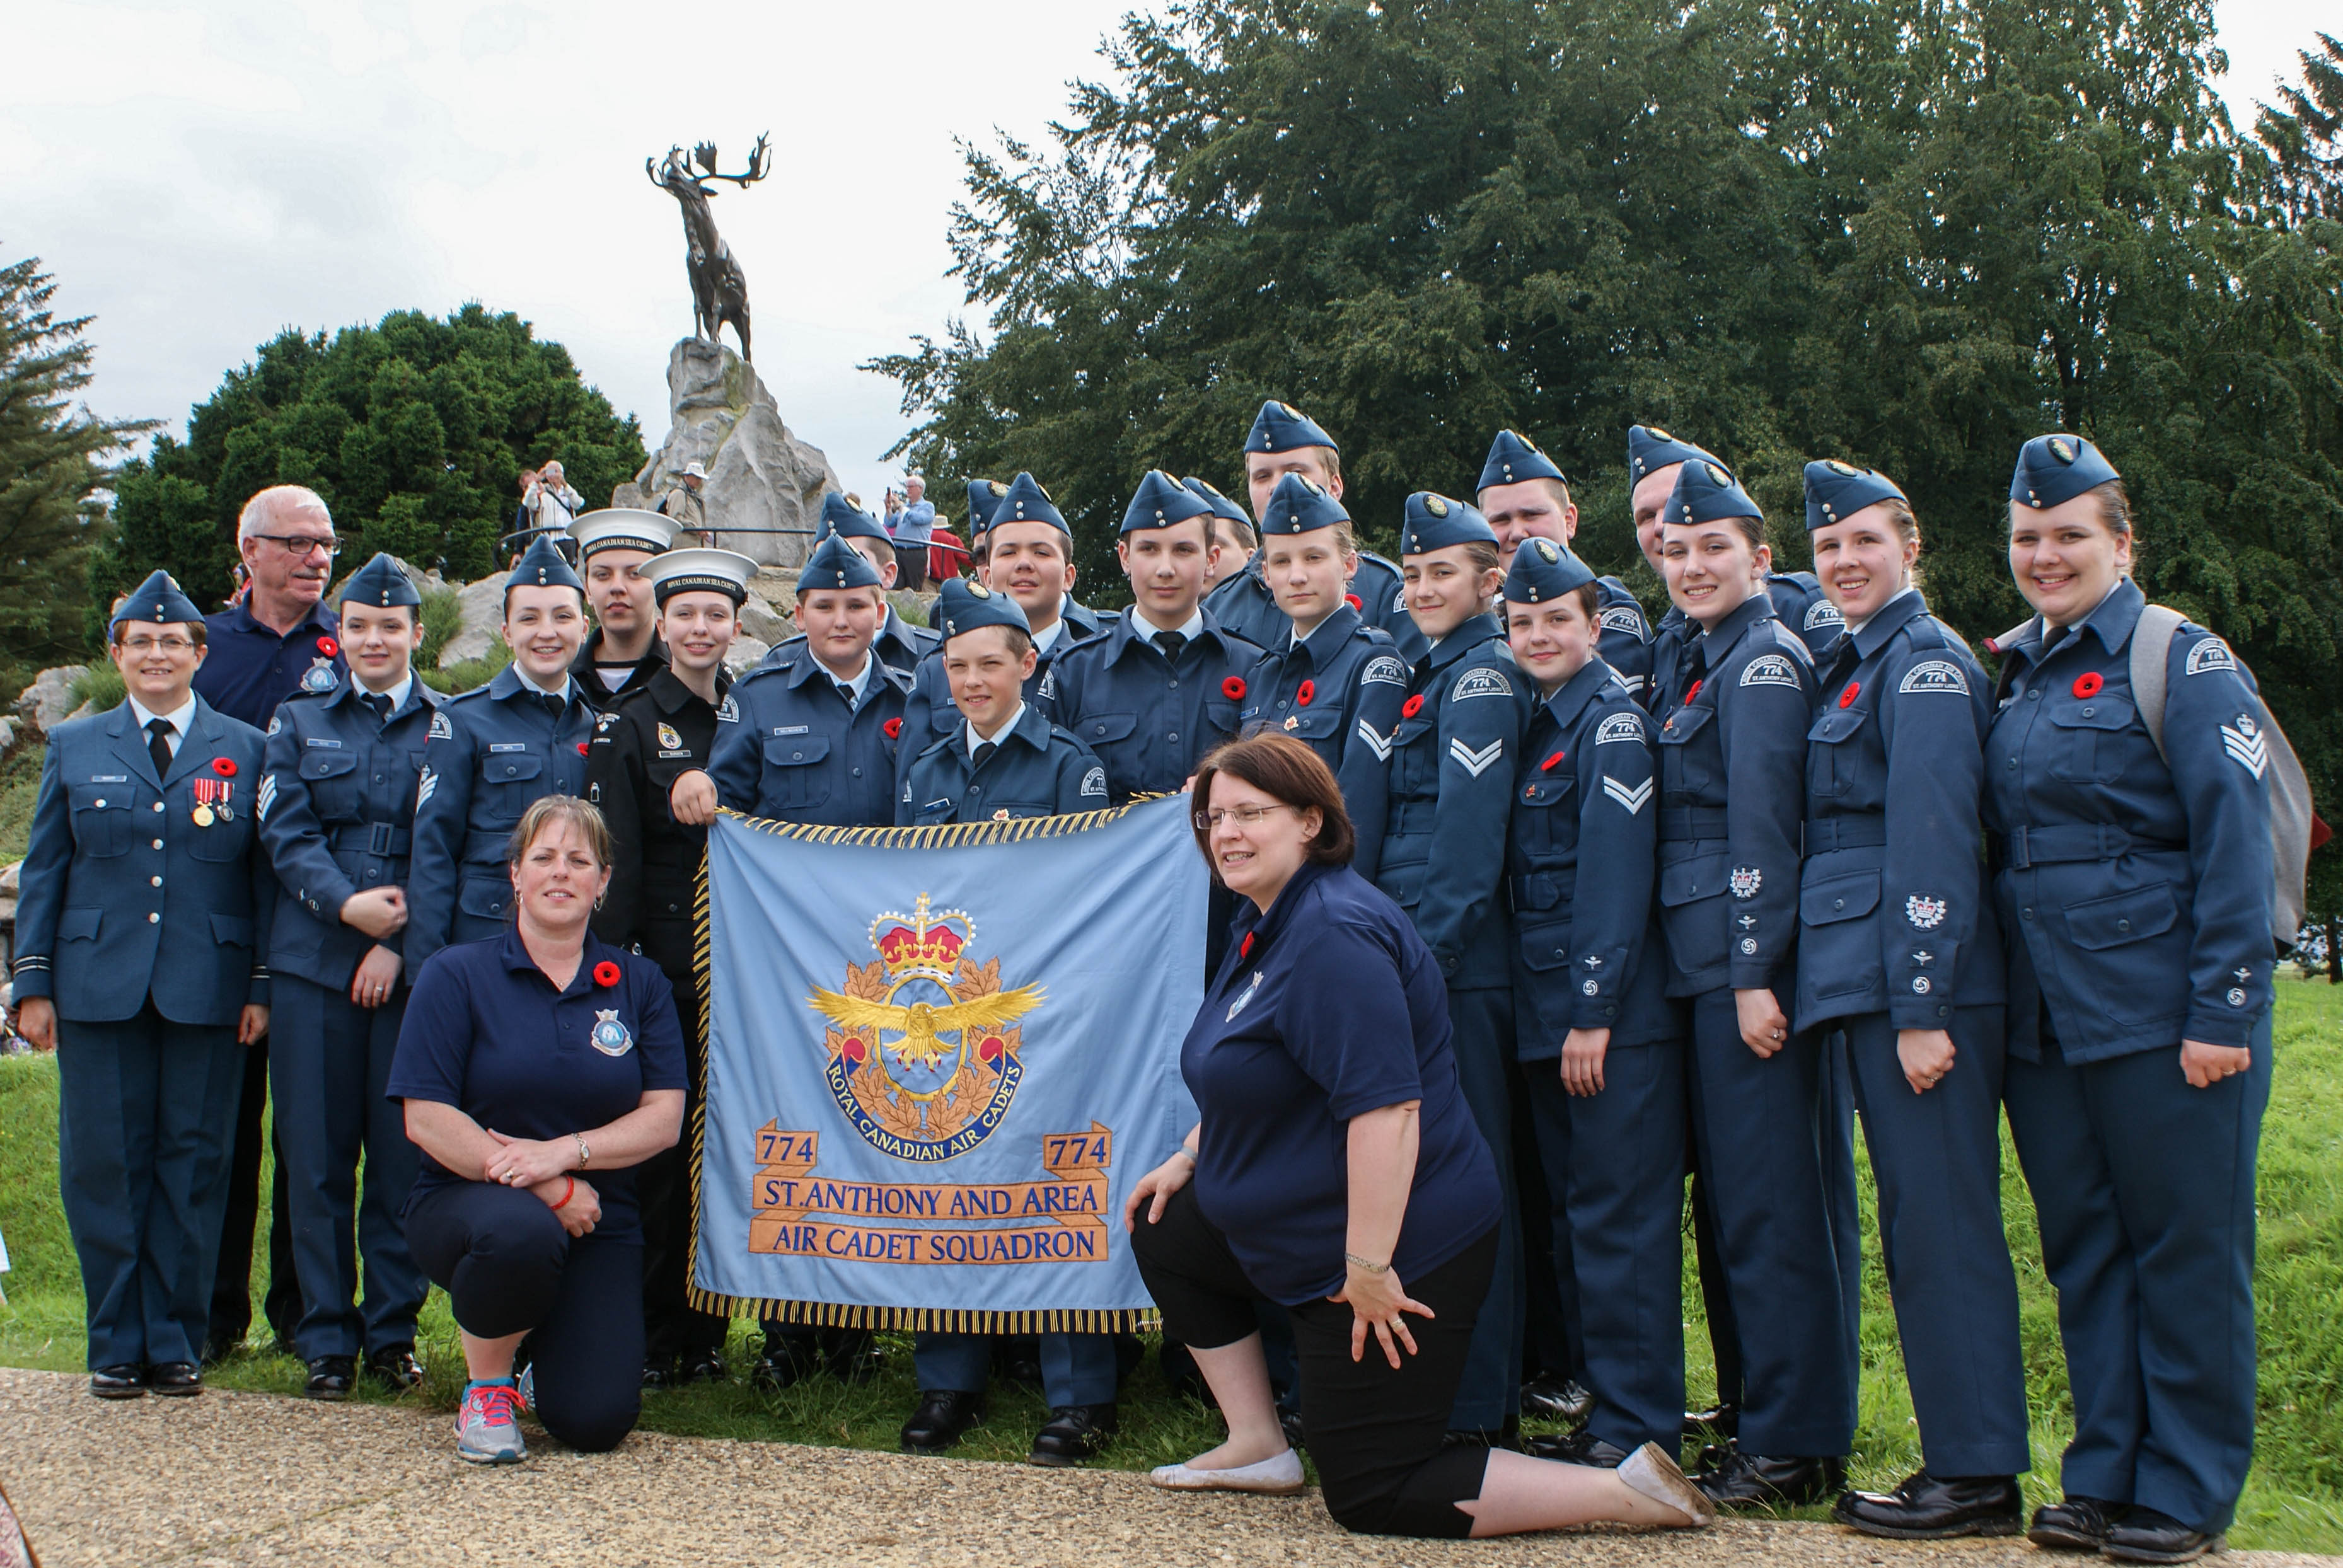 774 St. Anthony and Area Air Cadet Squadron